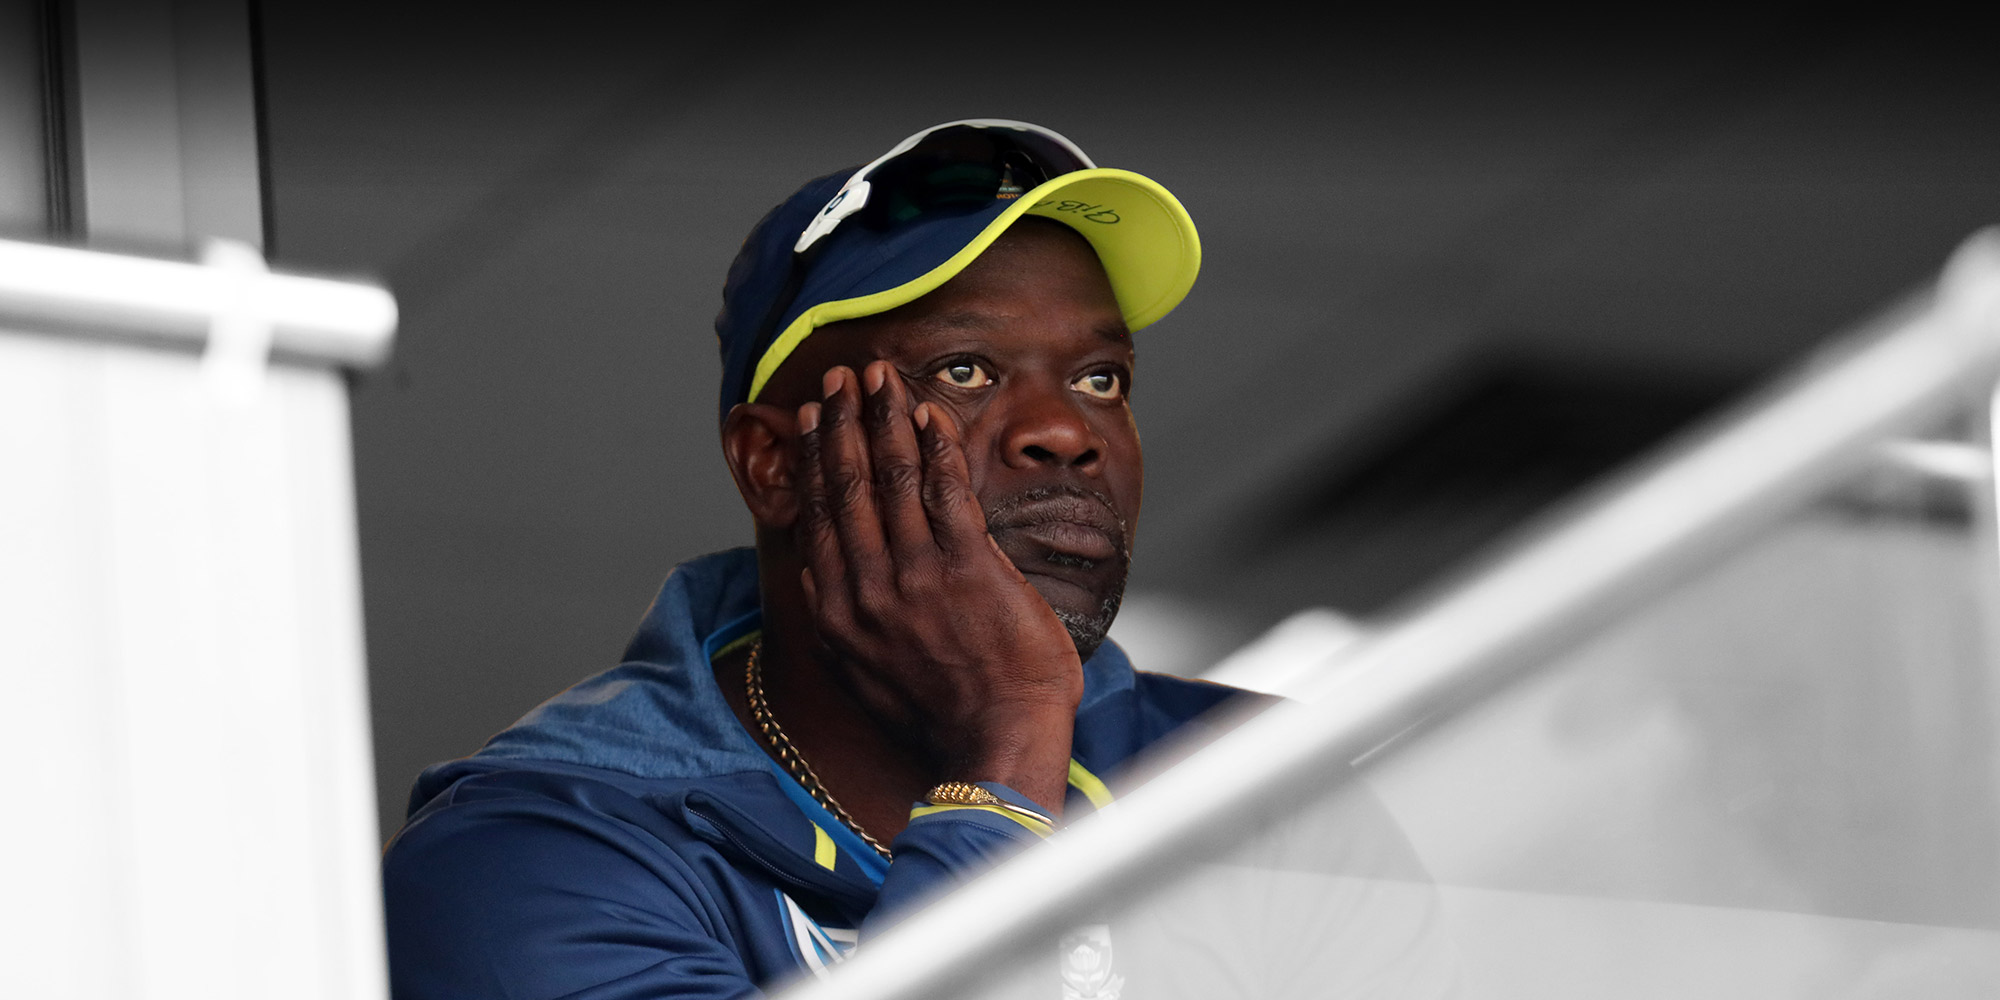 PROTEAS COACH OTTIS GIBSON: STATS AND FUTURE